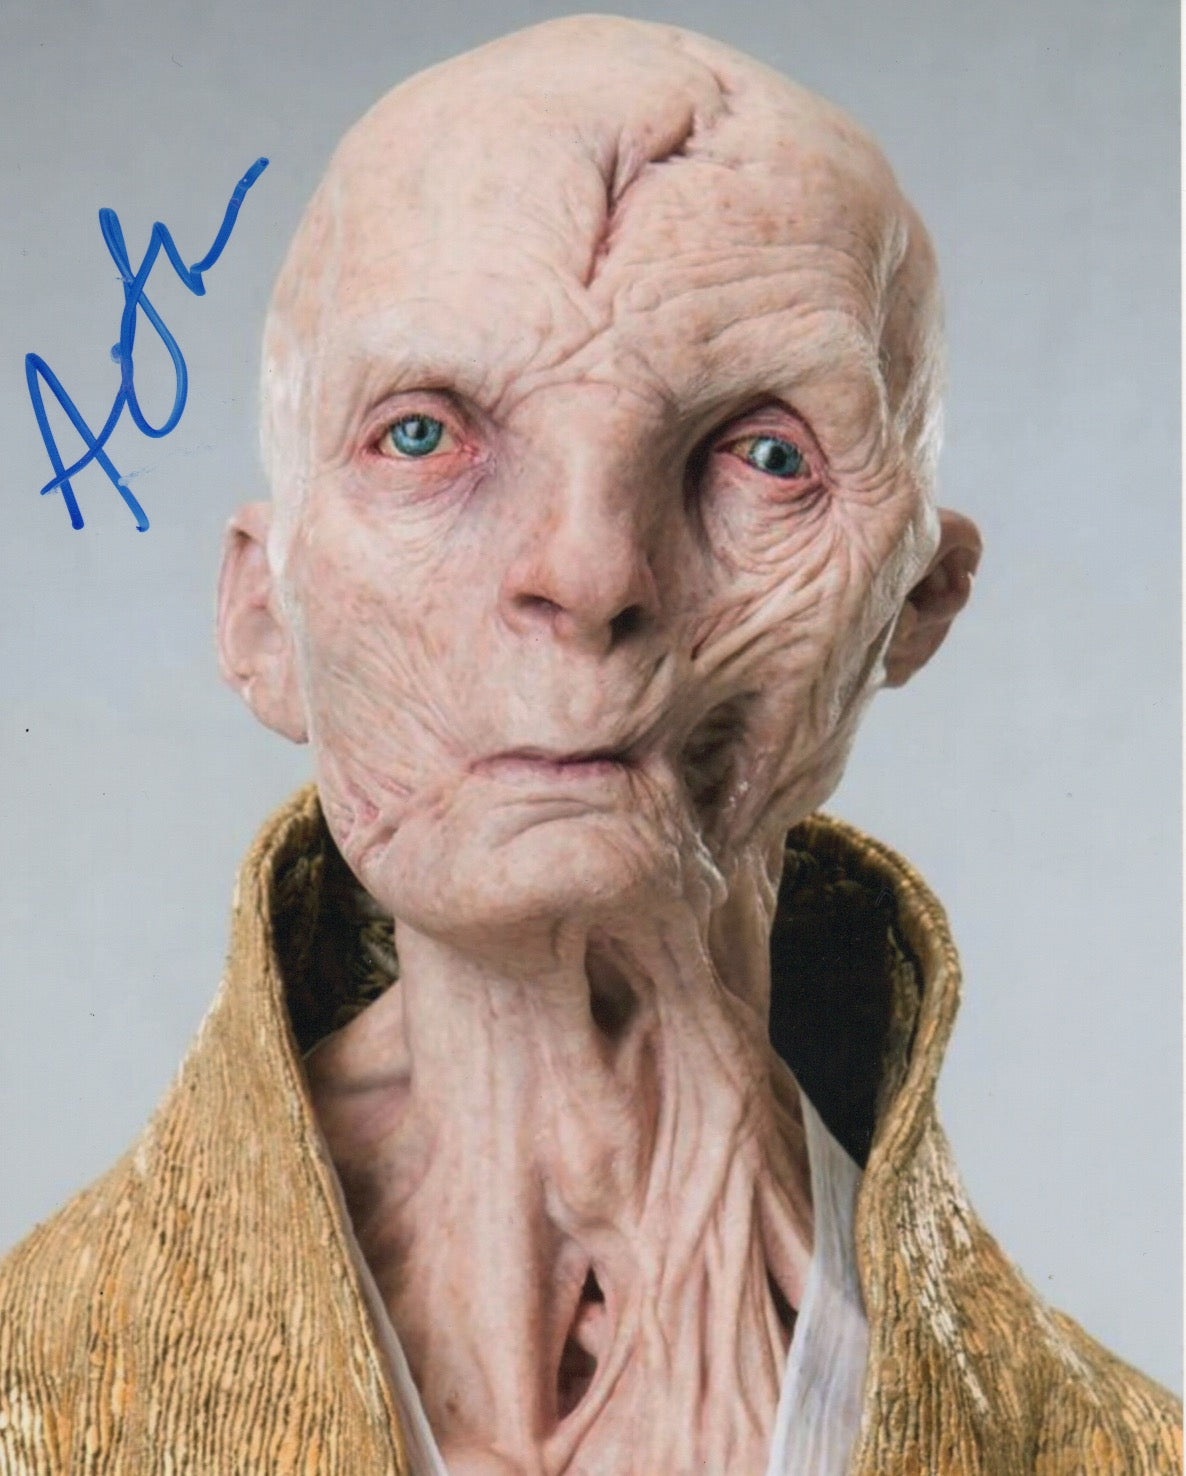 Andy Serkis Star Wars Signed Autograph 8x10 Photo - Outlaw Hobbies Authentic Autographs